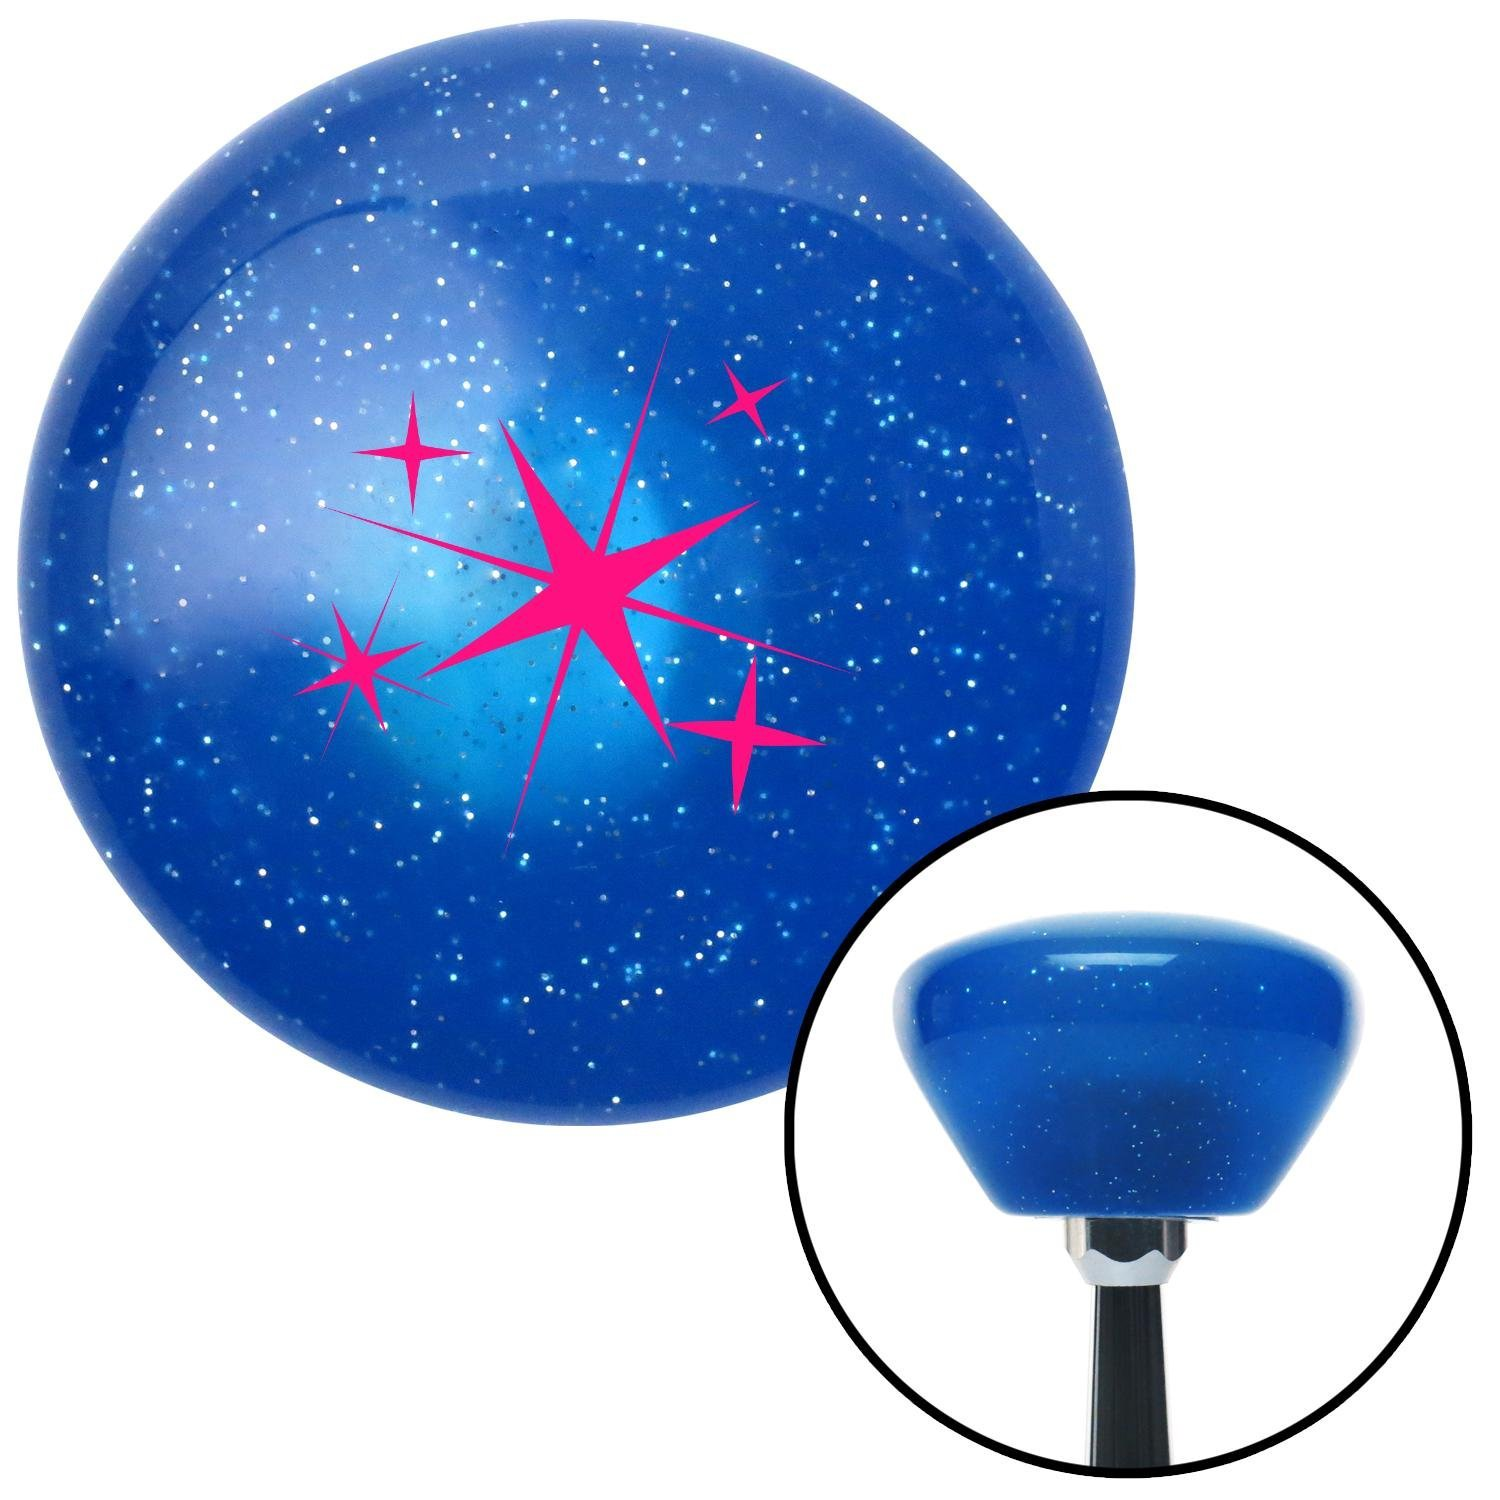 American Shifter 188329 Blue Retro Metal Flake Shift Knob with M16 x 1.5 Insert Pink Abstract Stars